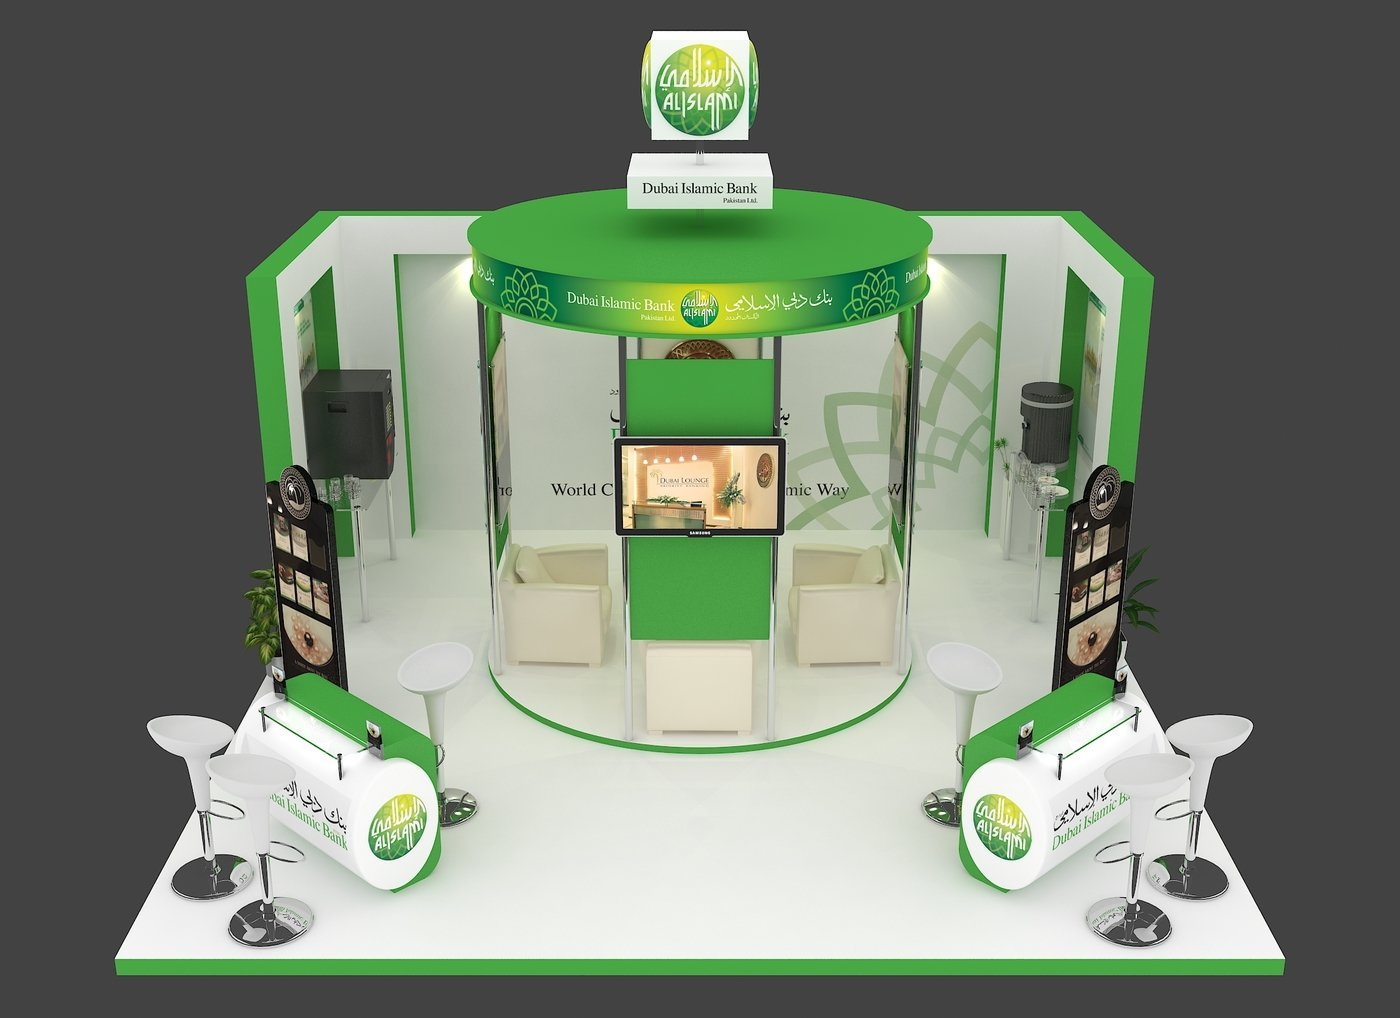 Exhibition Stall Designers In Karachi : Exhibition stall design for dubai islamic bank by umair